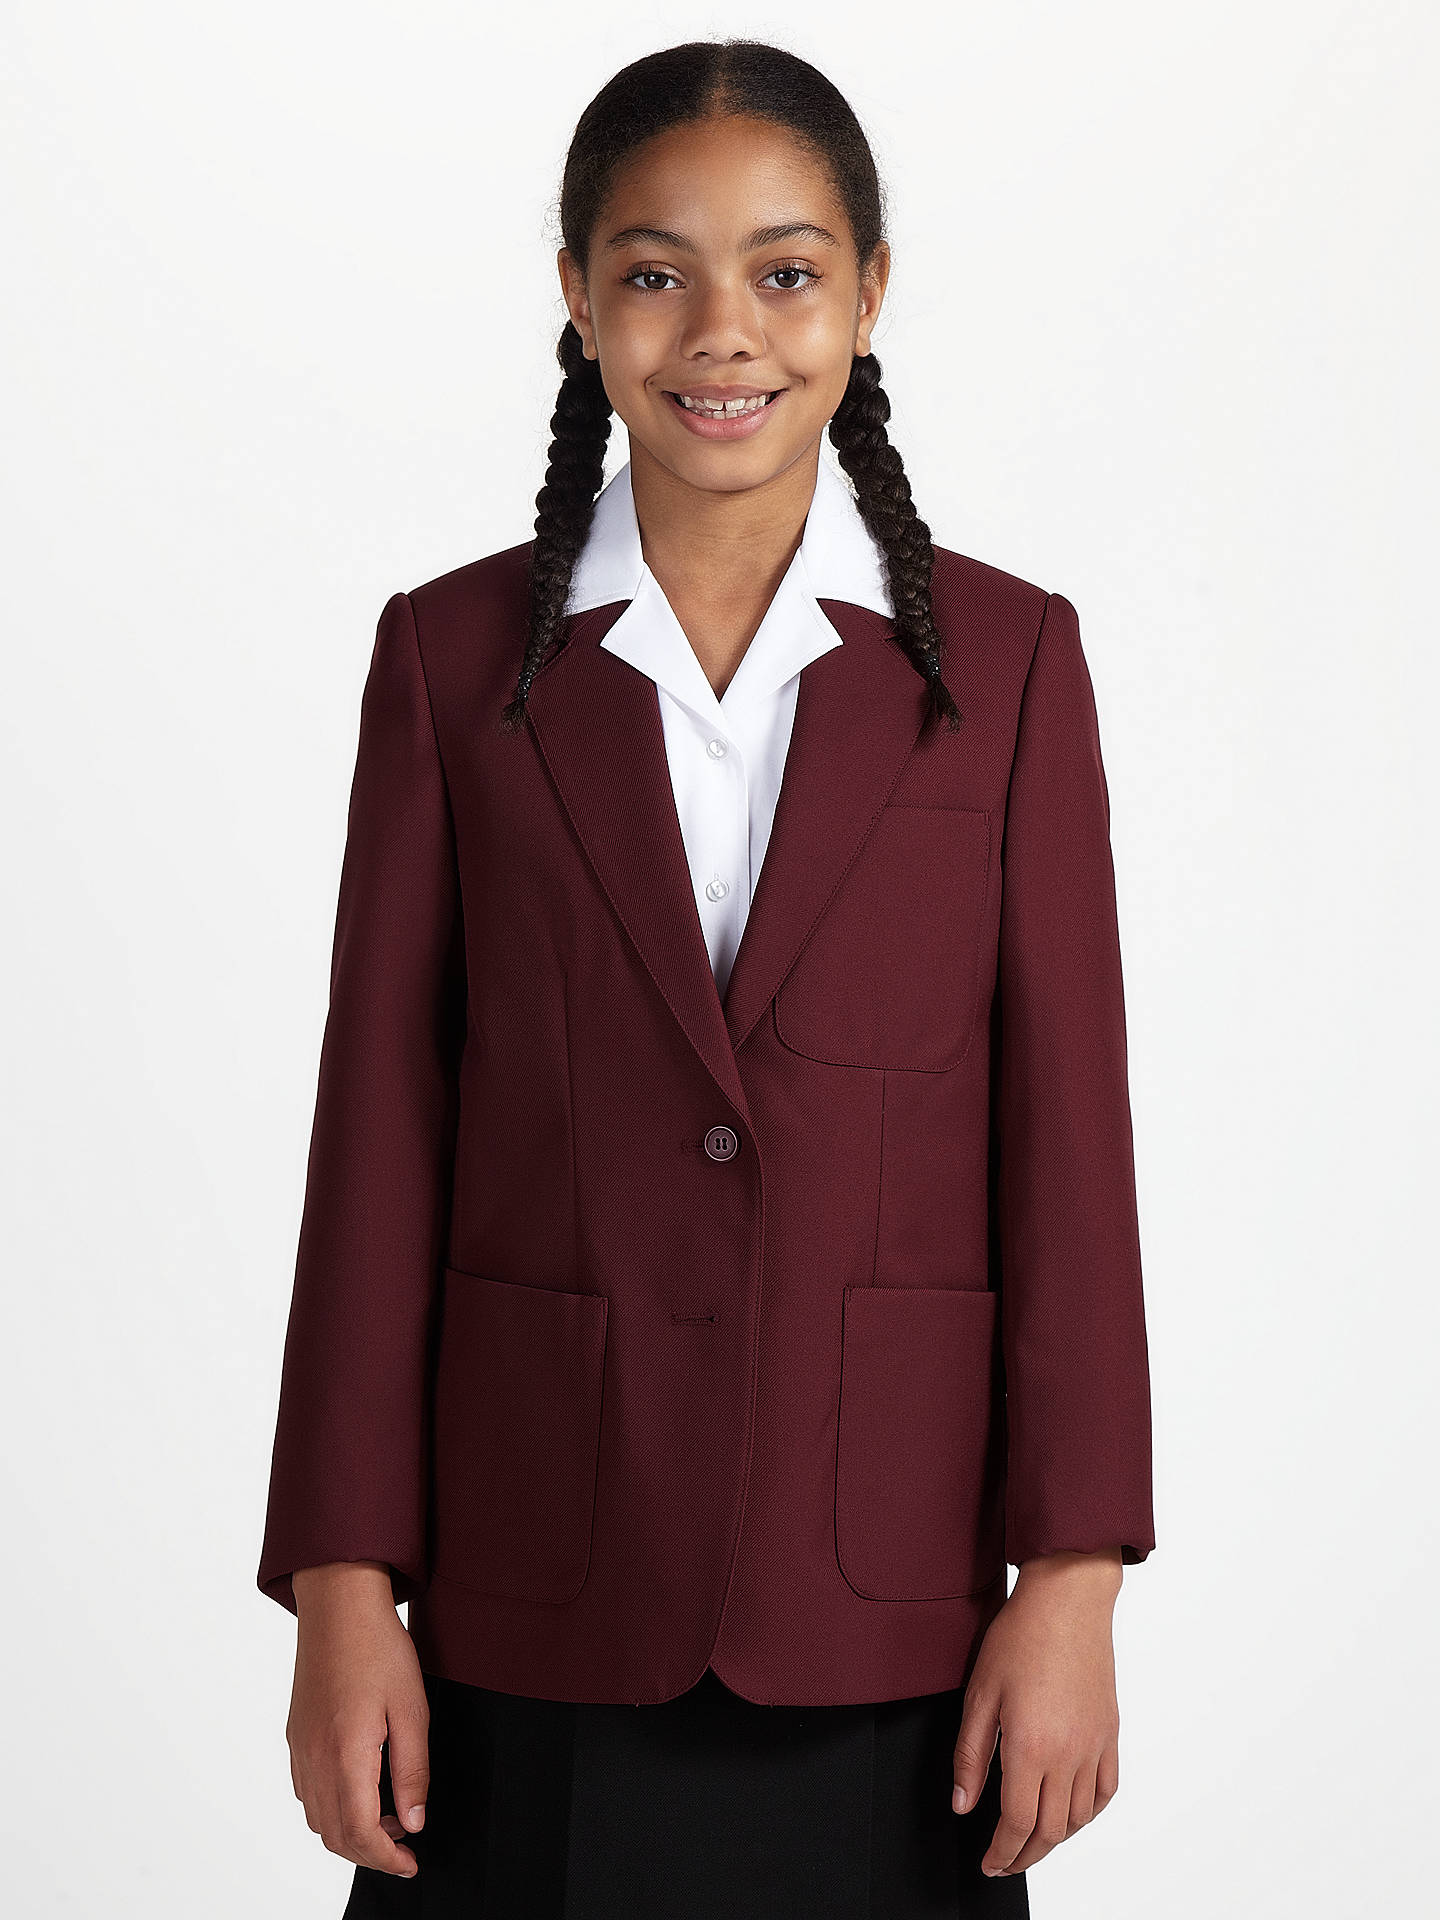 34889d93e9a Buy John Lewis & Partners Girls' School Eco Blazer, Maroon, Chest 36